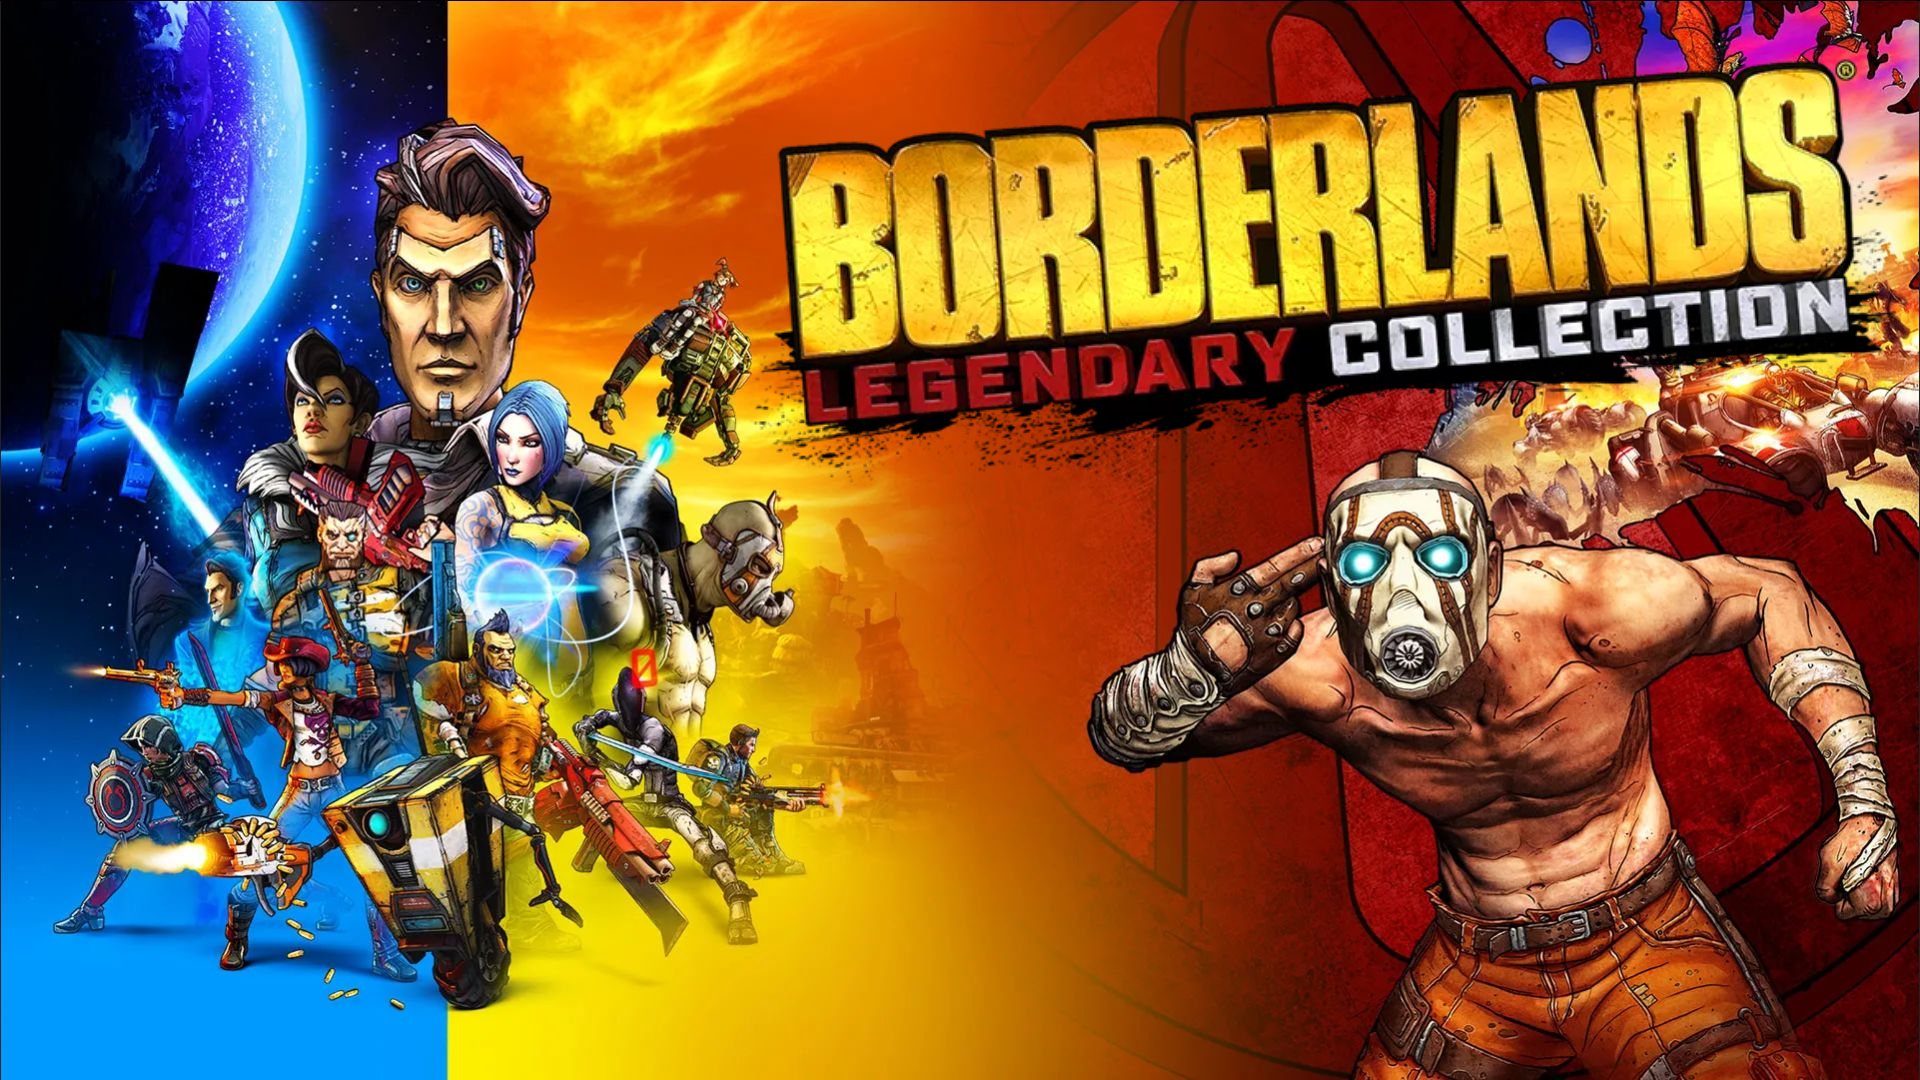 Borderlands Legendary Collection (Nintendo Switch) Review